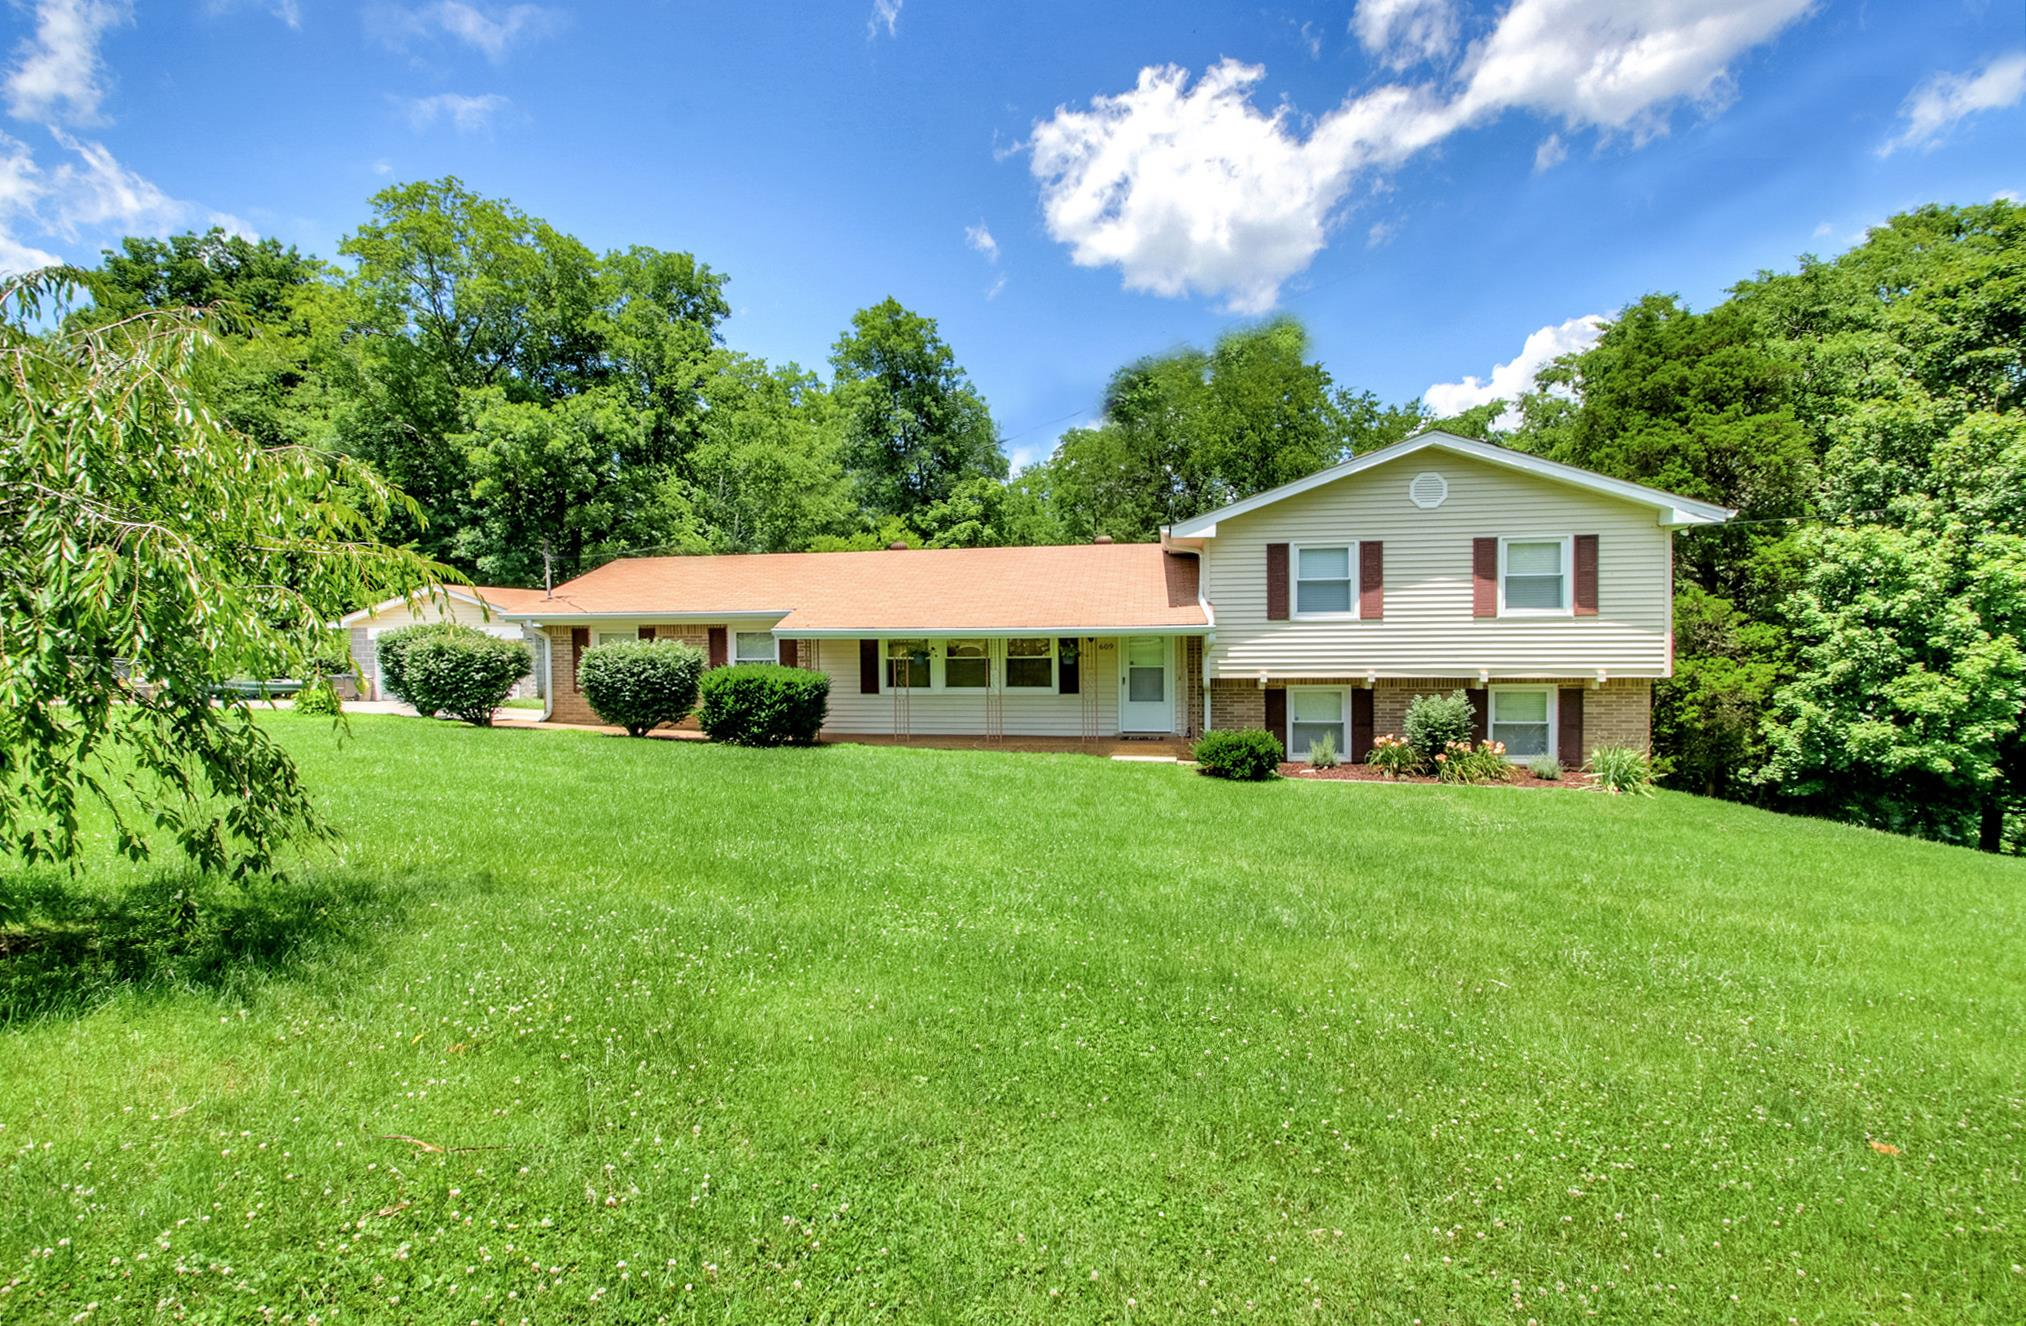 609 Sunnyslope Ct, Goodlettsville, TN 37072 - Goodlettsville, TN real estate listing